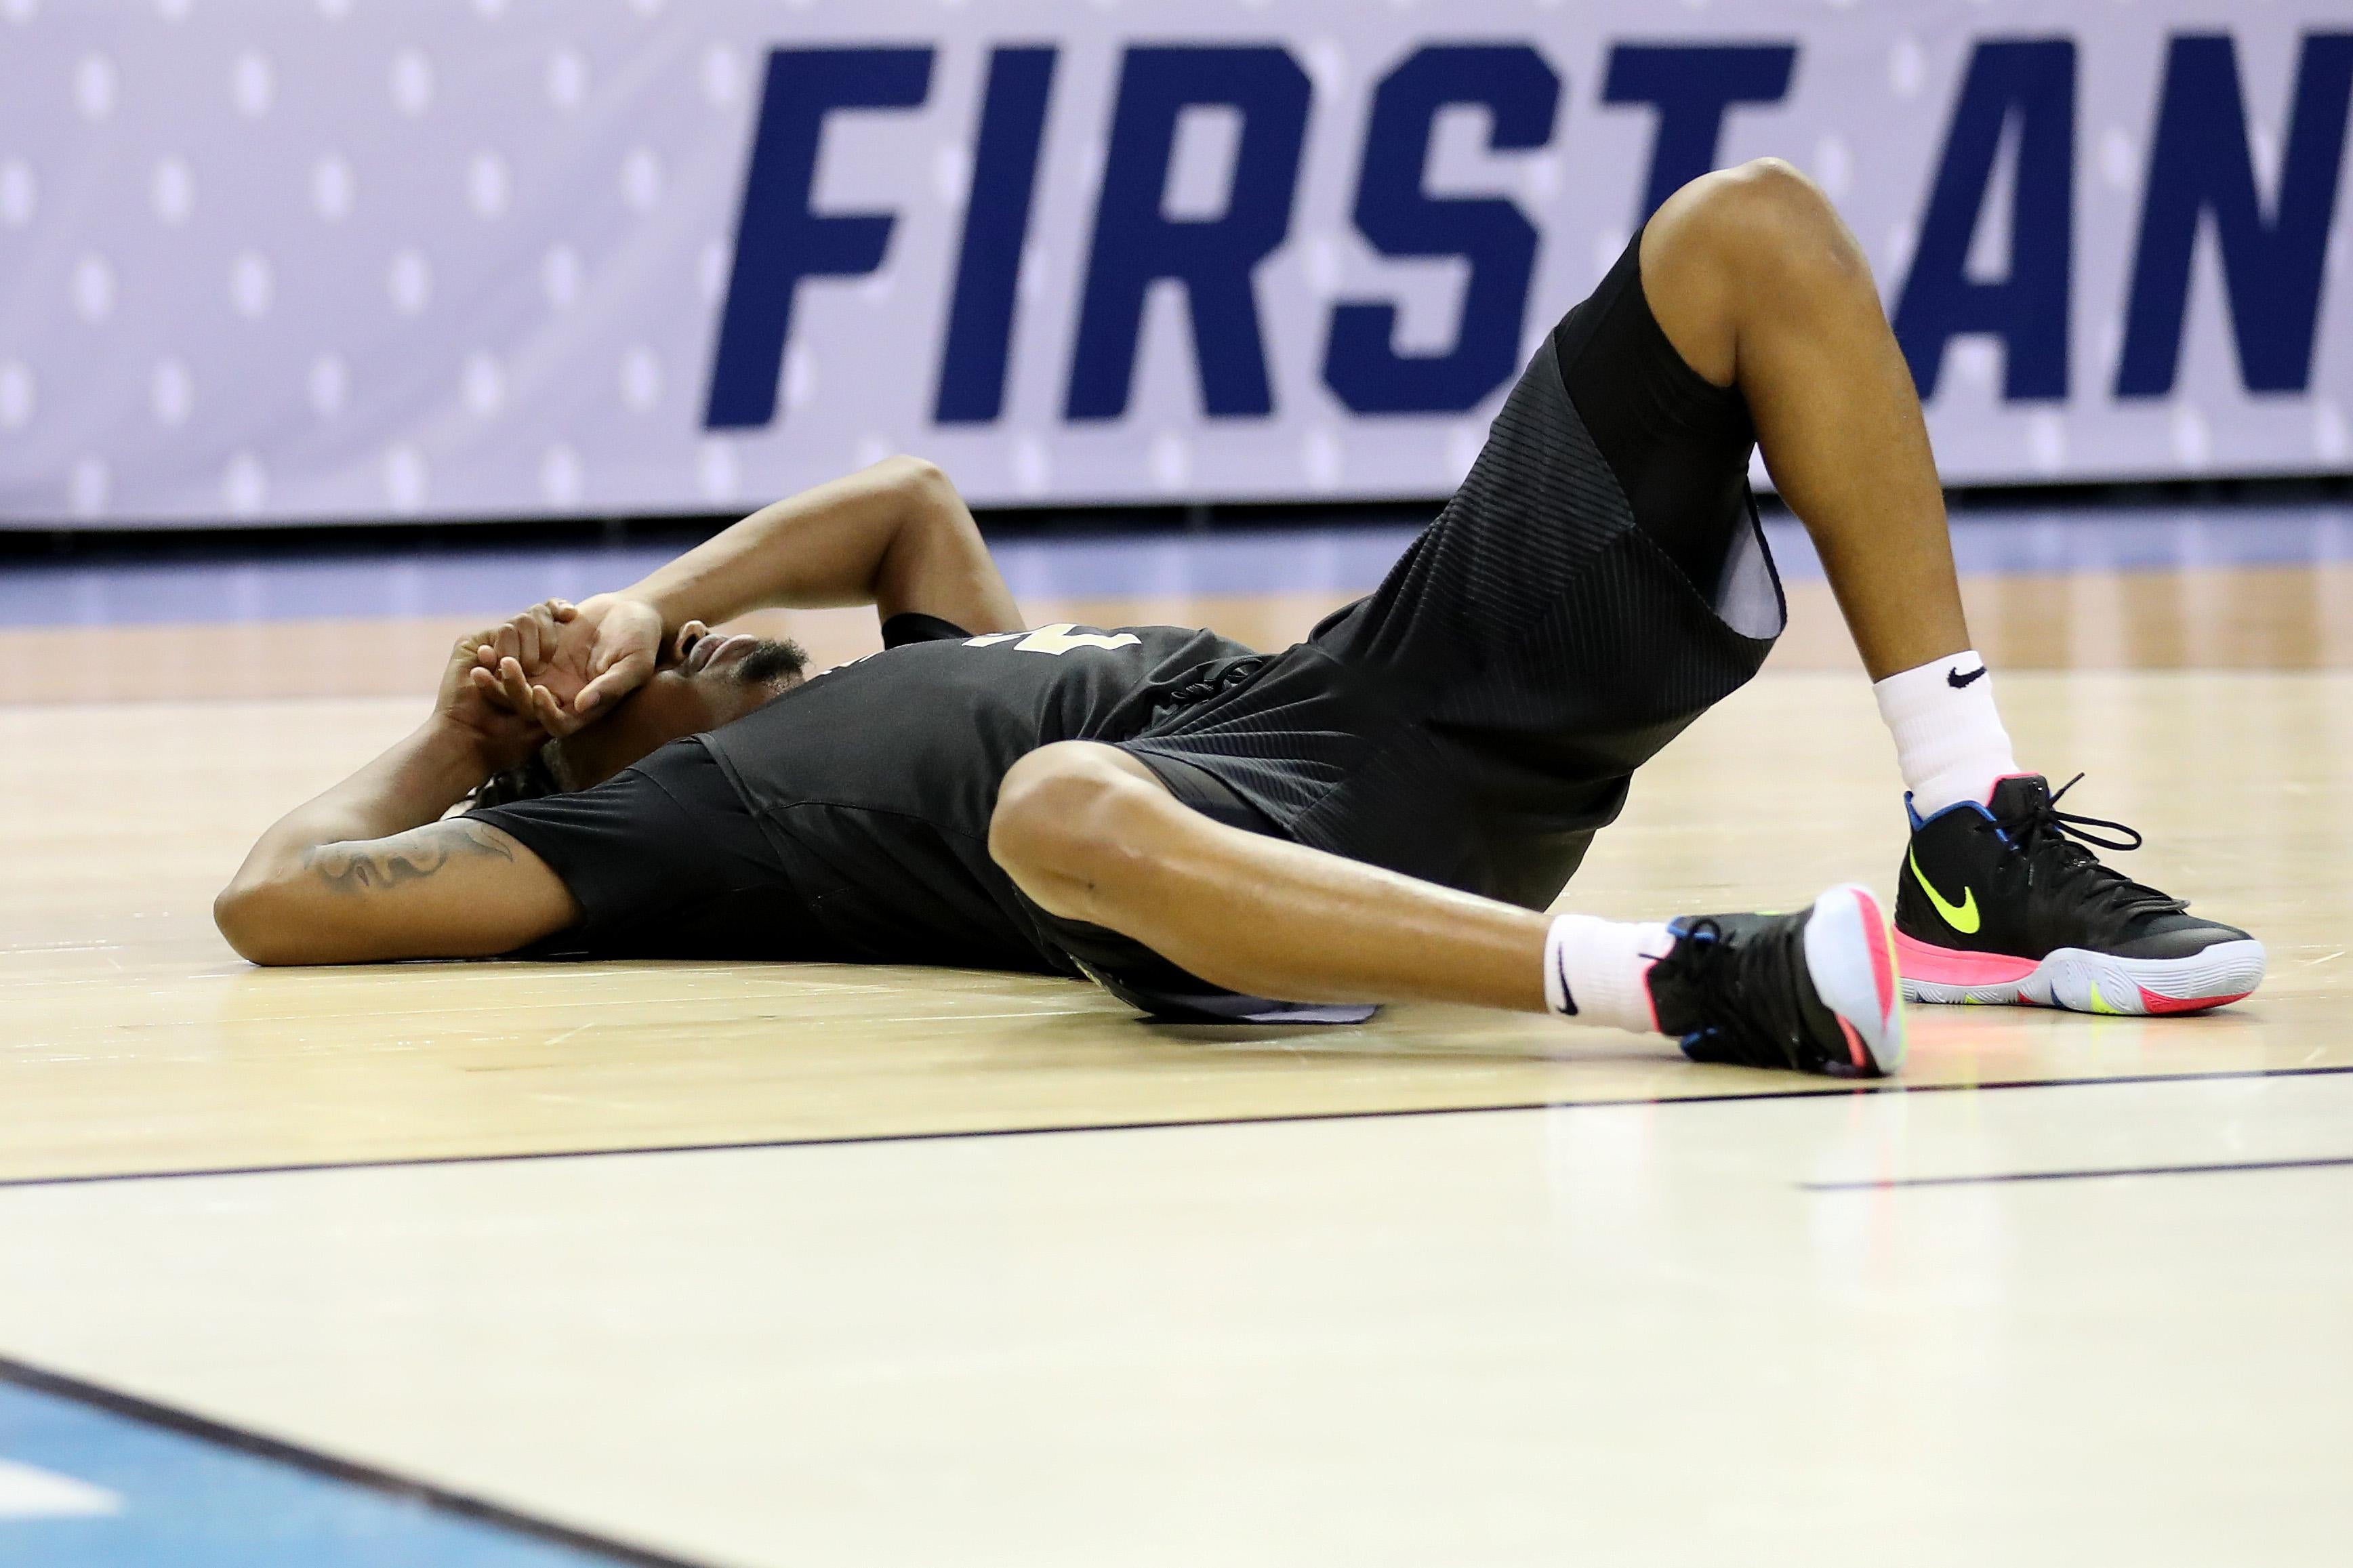 COLUMBIA, SOUTH CAROLINA - MARCH 24: Terrell Allen #2 of the UCF Knights reacts after being defeated by Duke Blue Devils in the second round game of the 2019 NCAA Men's Basketball Tournament at Colonial Life Arena on March 24, 2019 in Columbia, South Carolina. (Photo by Streeter Lecka/Getty Images)